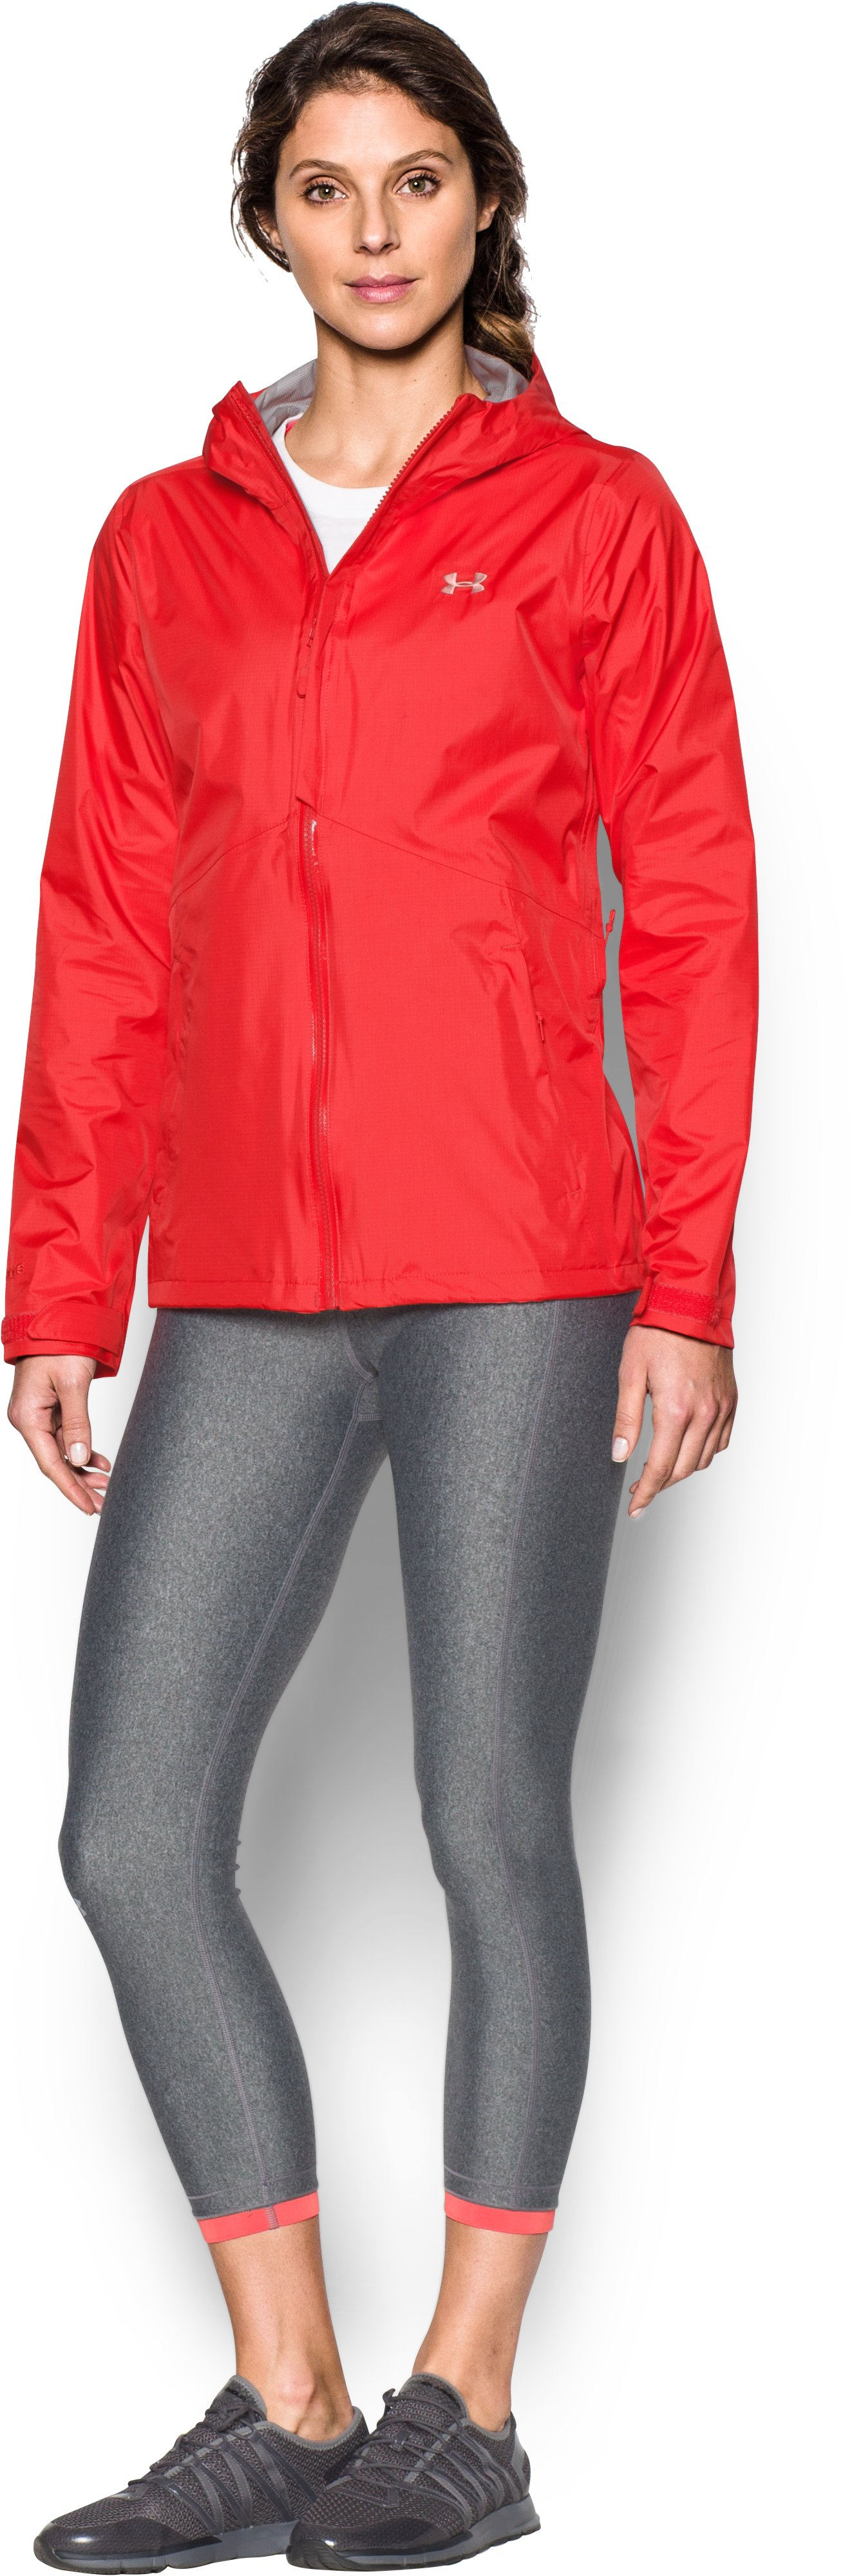 Women's UA Surge Jacket, Pomegranate